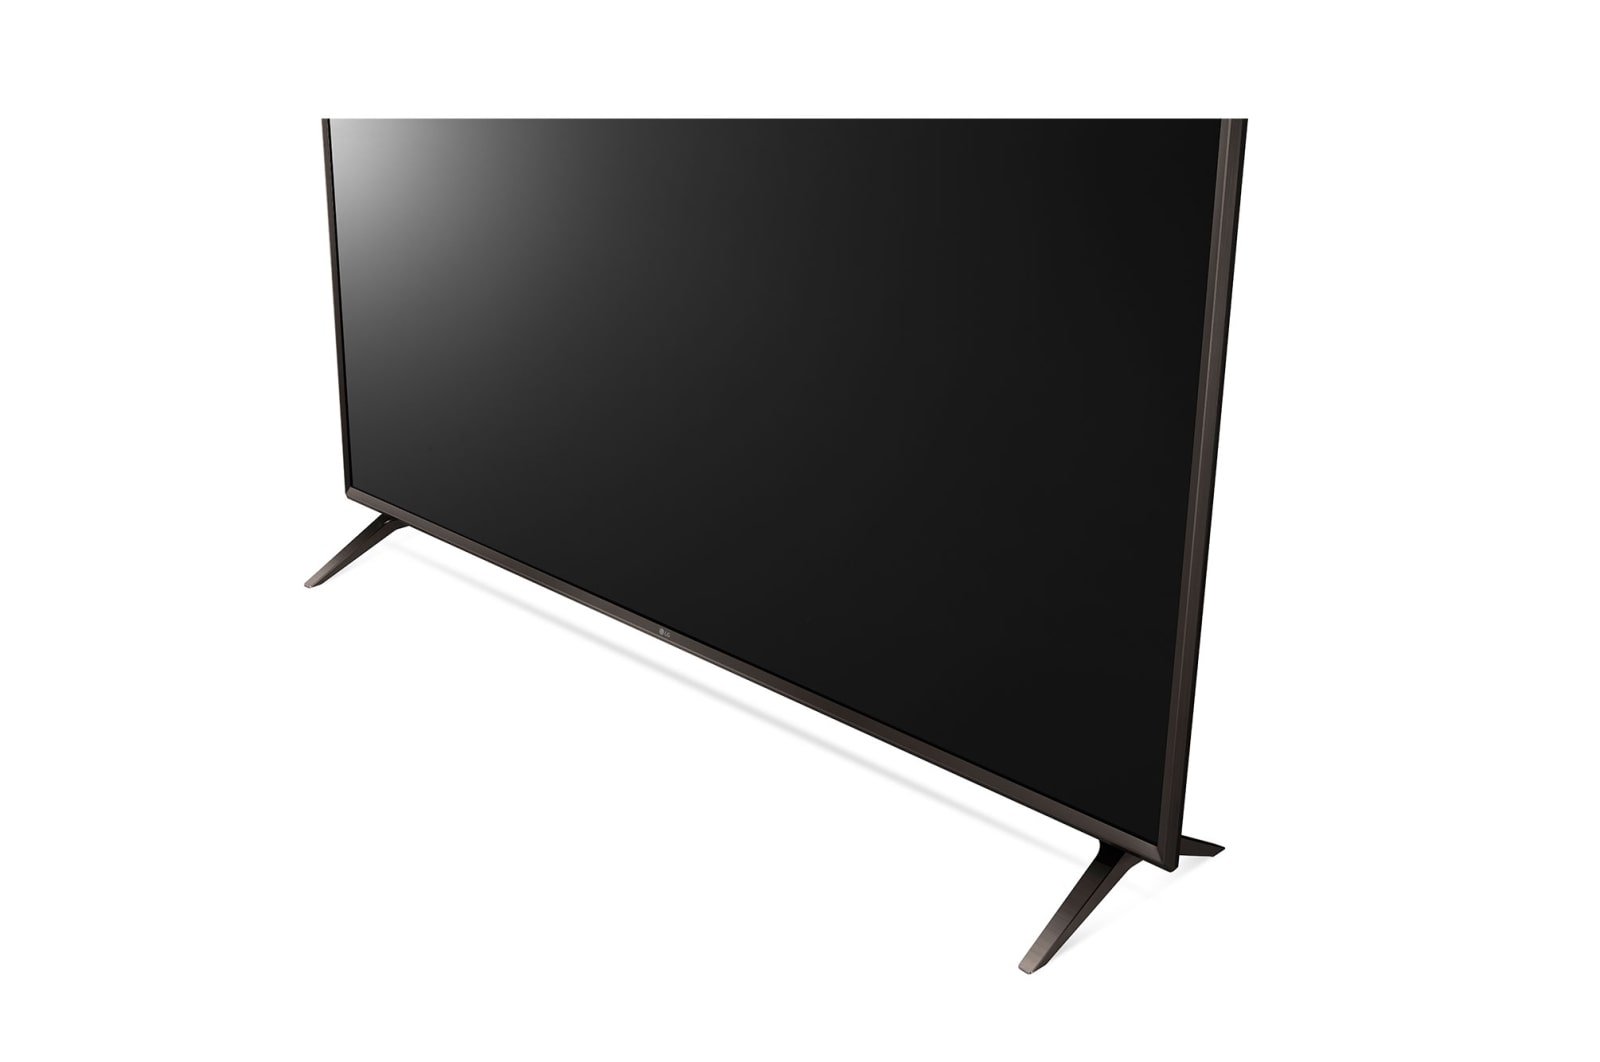 LG 55 Inches Ultra HD LED Smart TV (55UK6360PTE, Black)